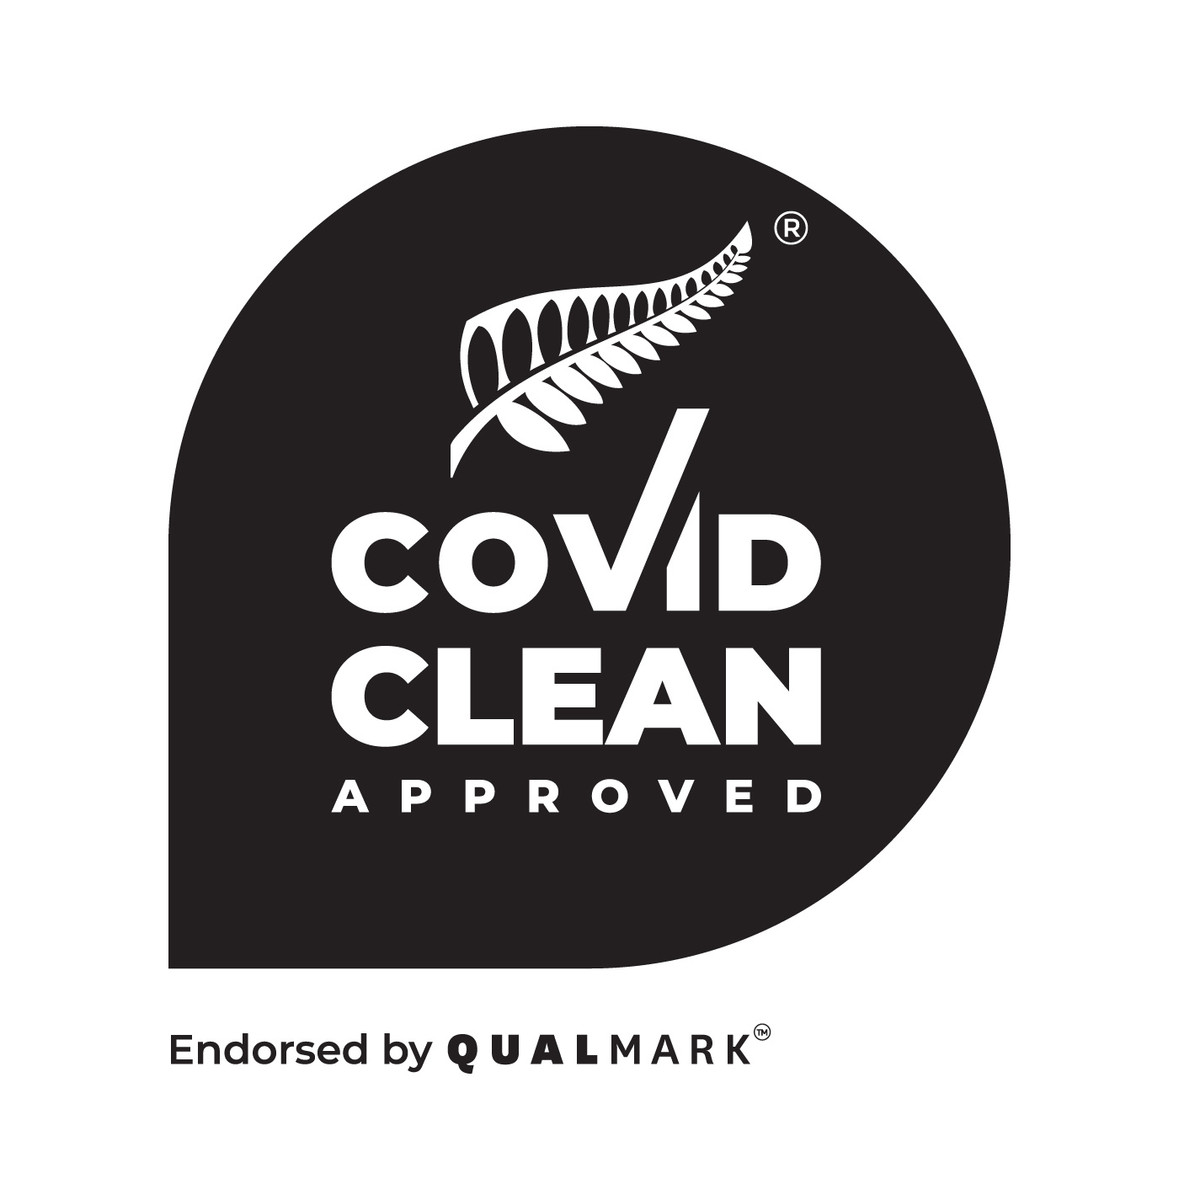 City Walks is Qualmark 'Covid Clean' approved. Click the link below to see what this means.